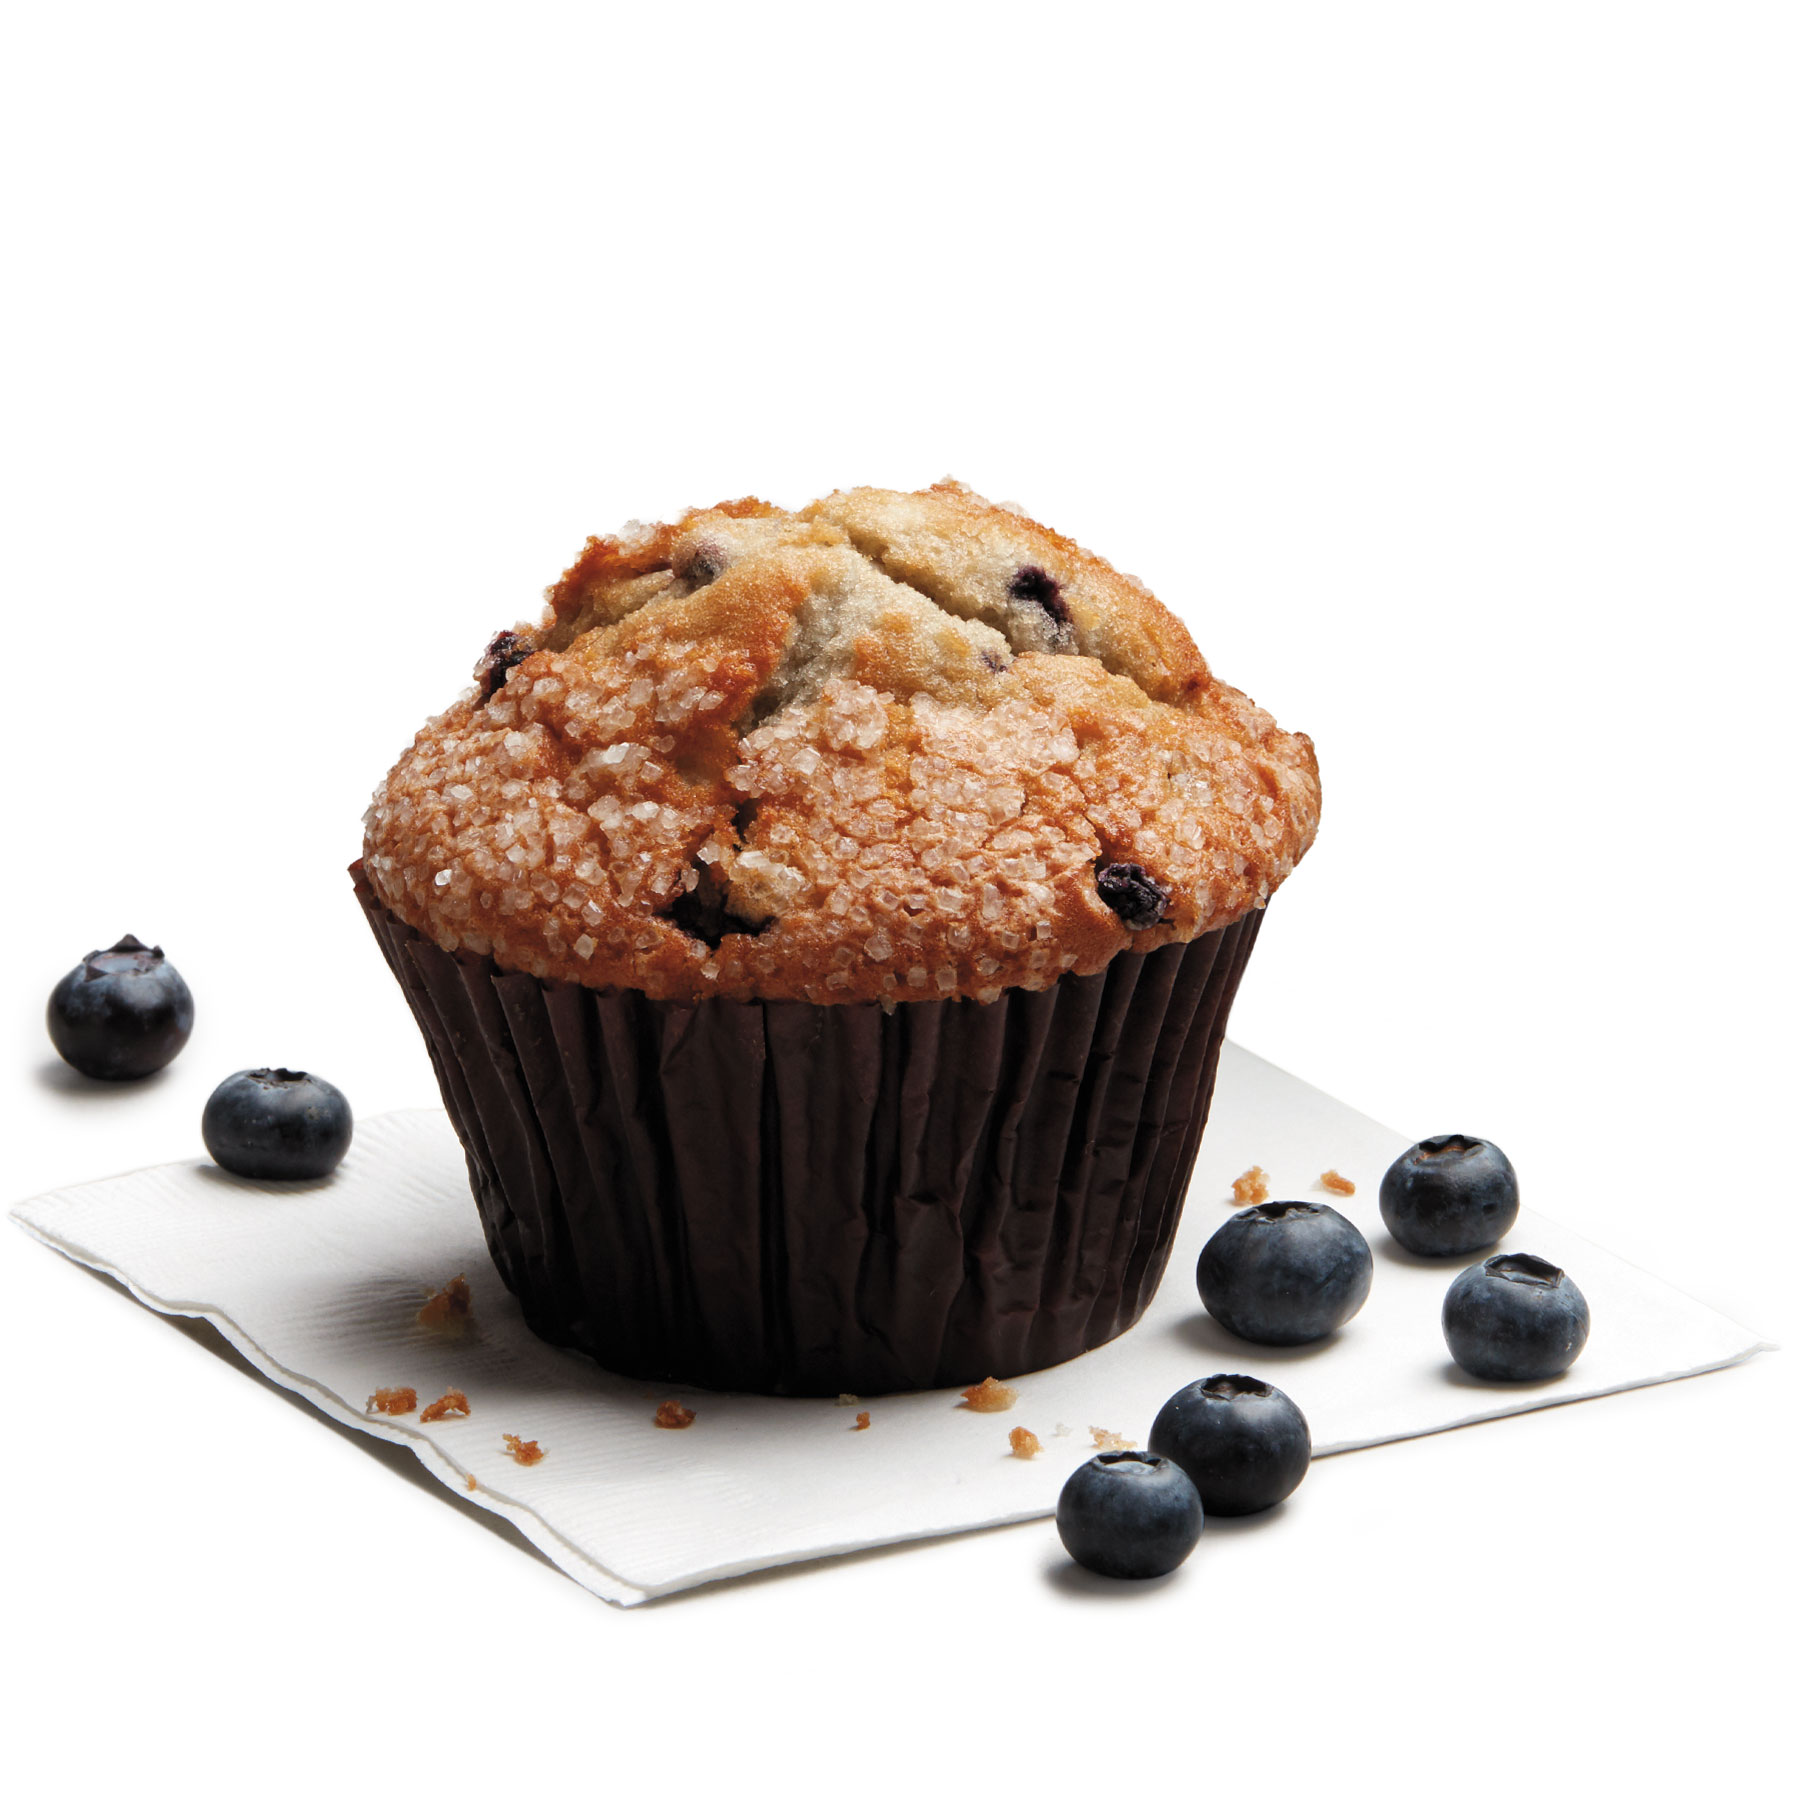 A freshly baked blueberry muffin.